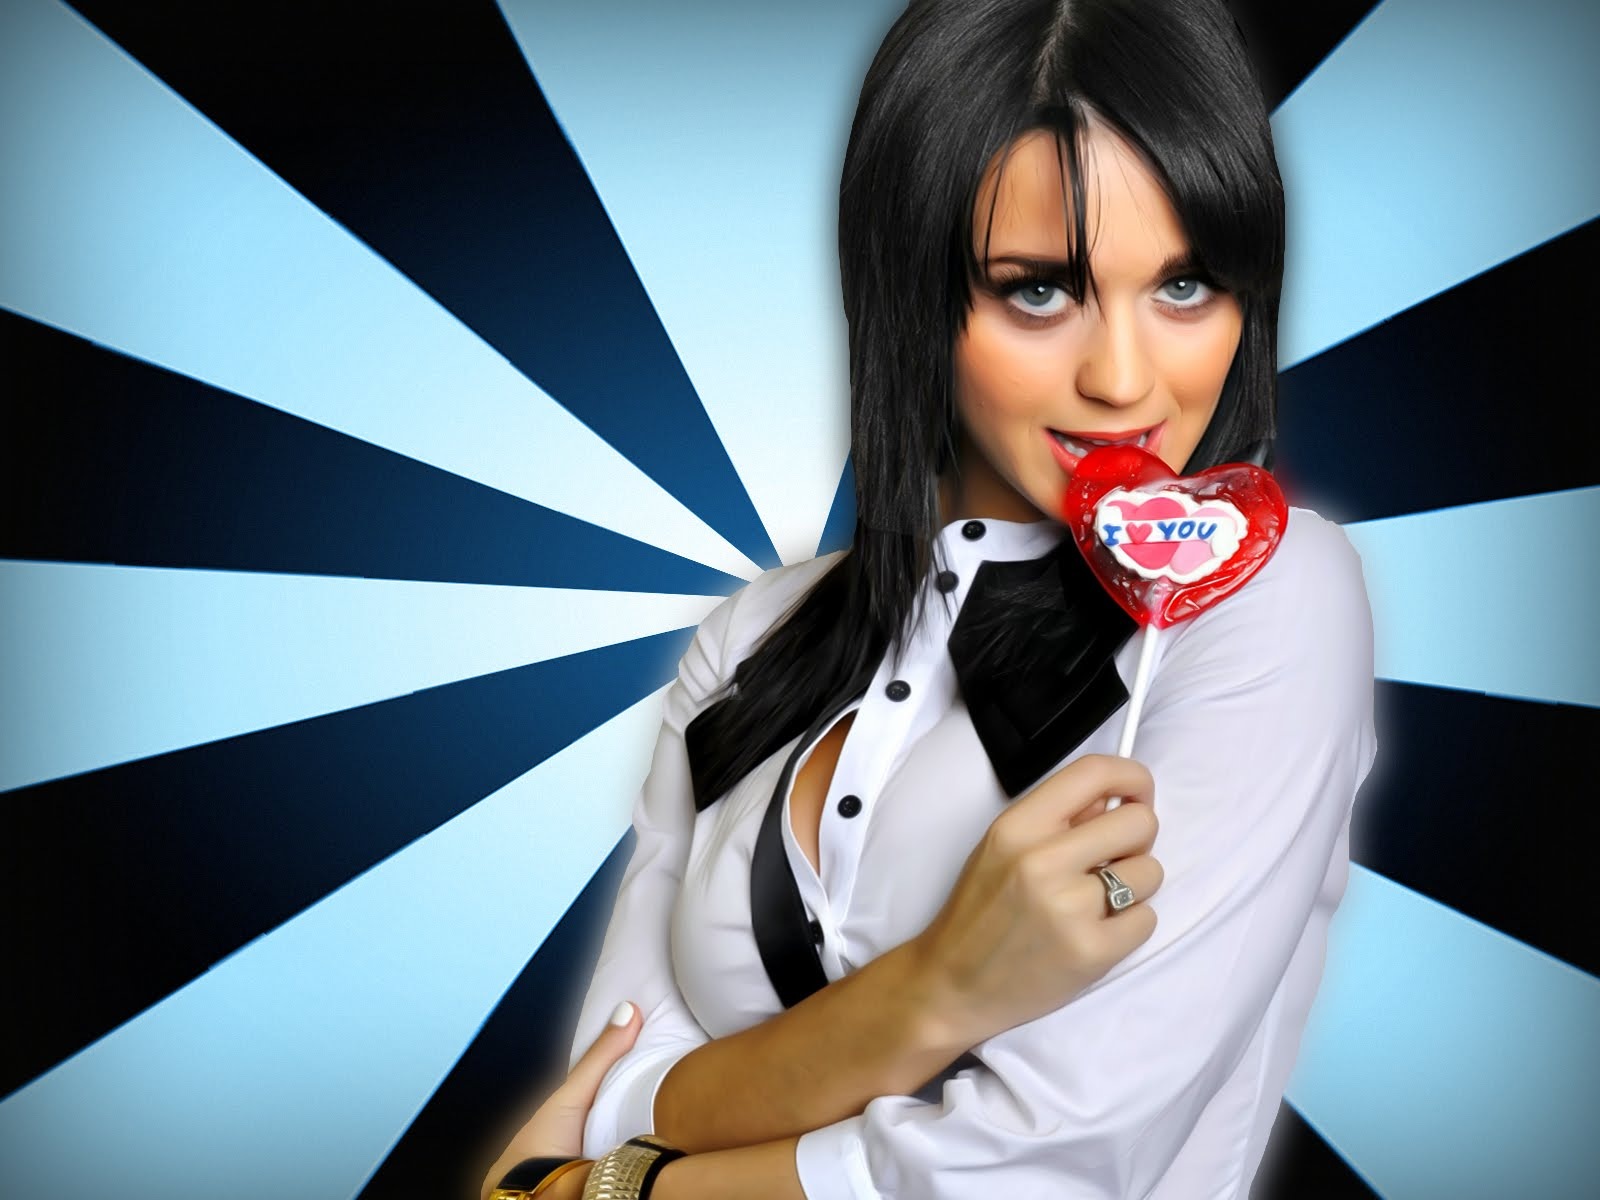 http://1.bp.blogspot.com/_mrf8xbhY-4E/S-h8N24QxlI/AAAAAAAAA5Y/nKWBtN5ACEo/s1600/Katy_Perry_wp_series_1_by_in_dolly.jpg